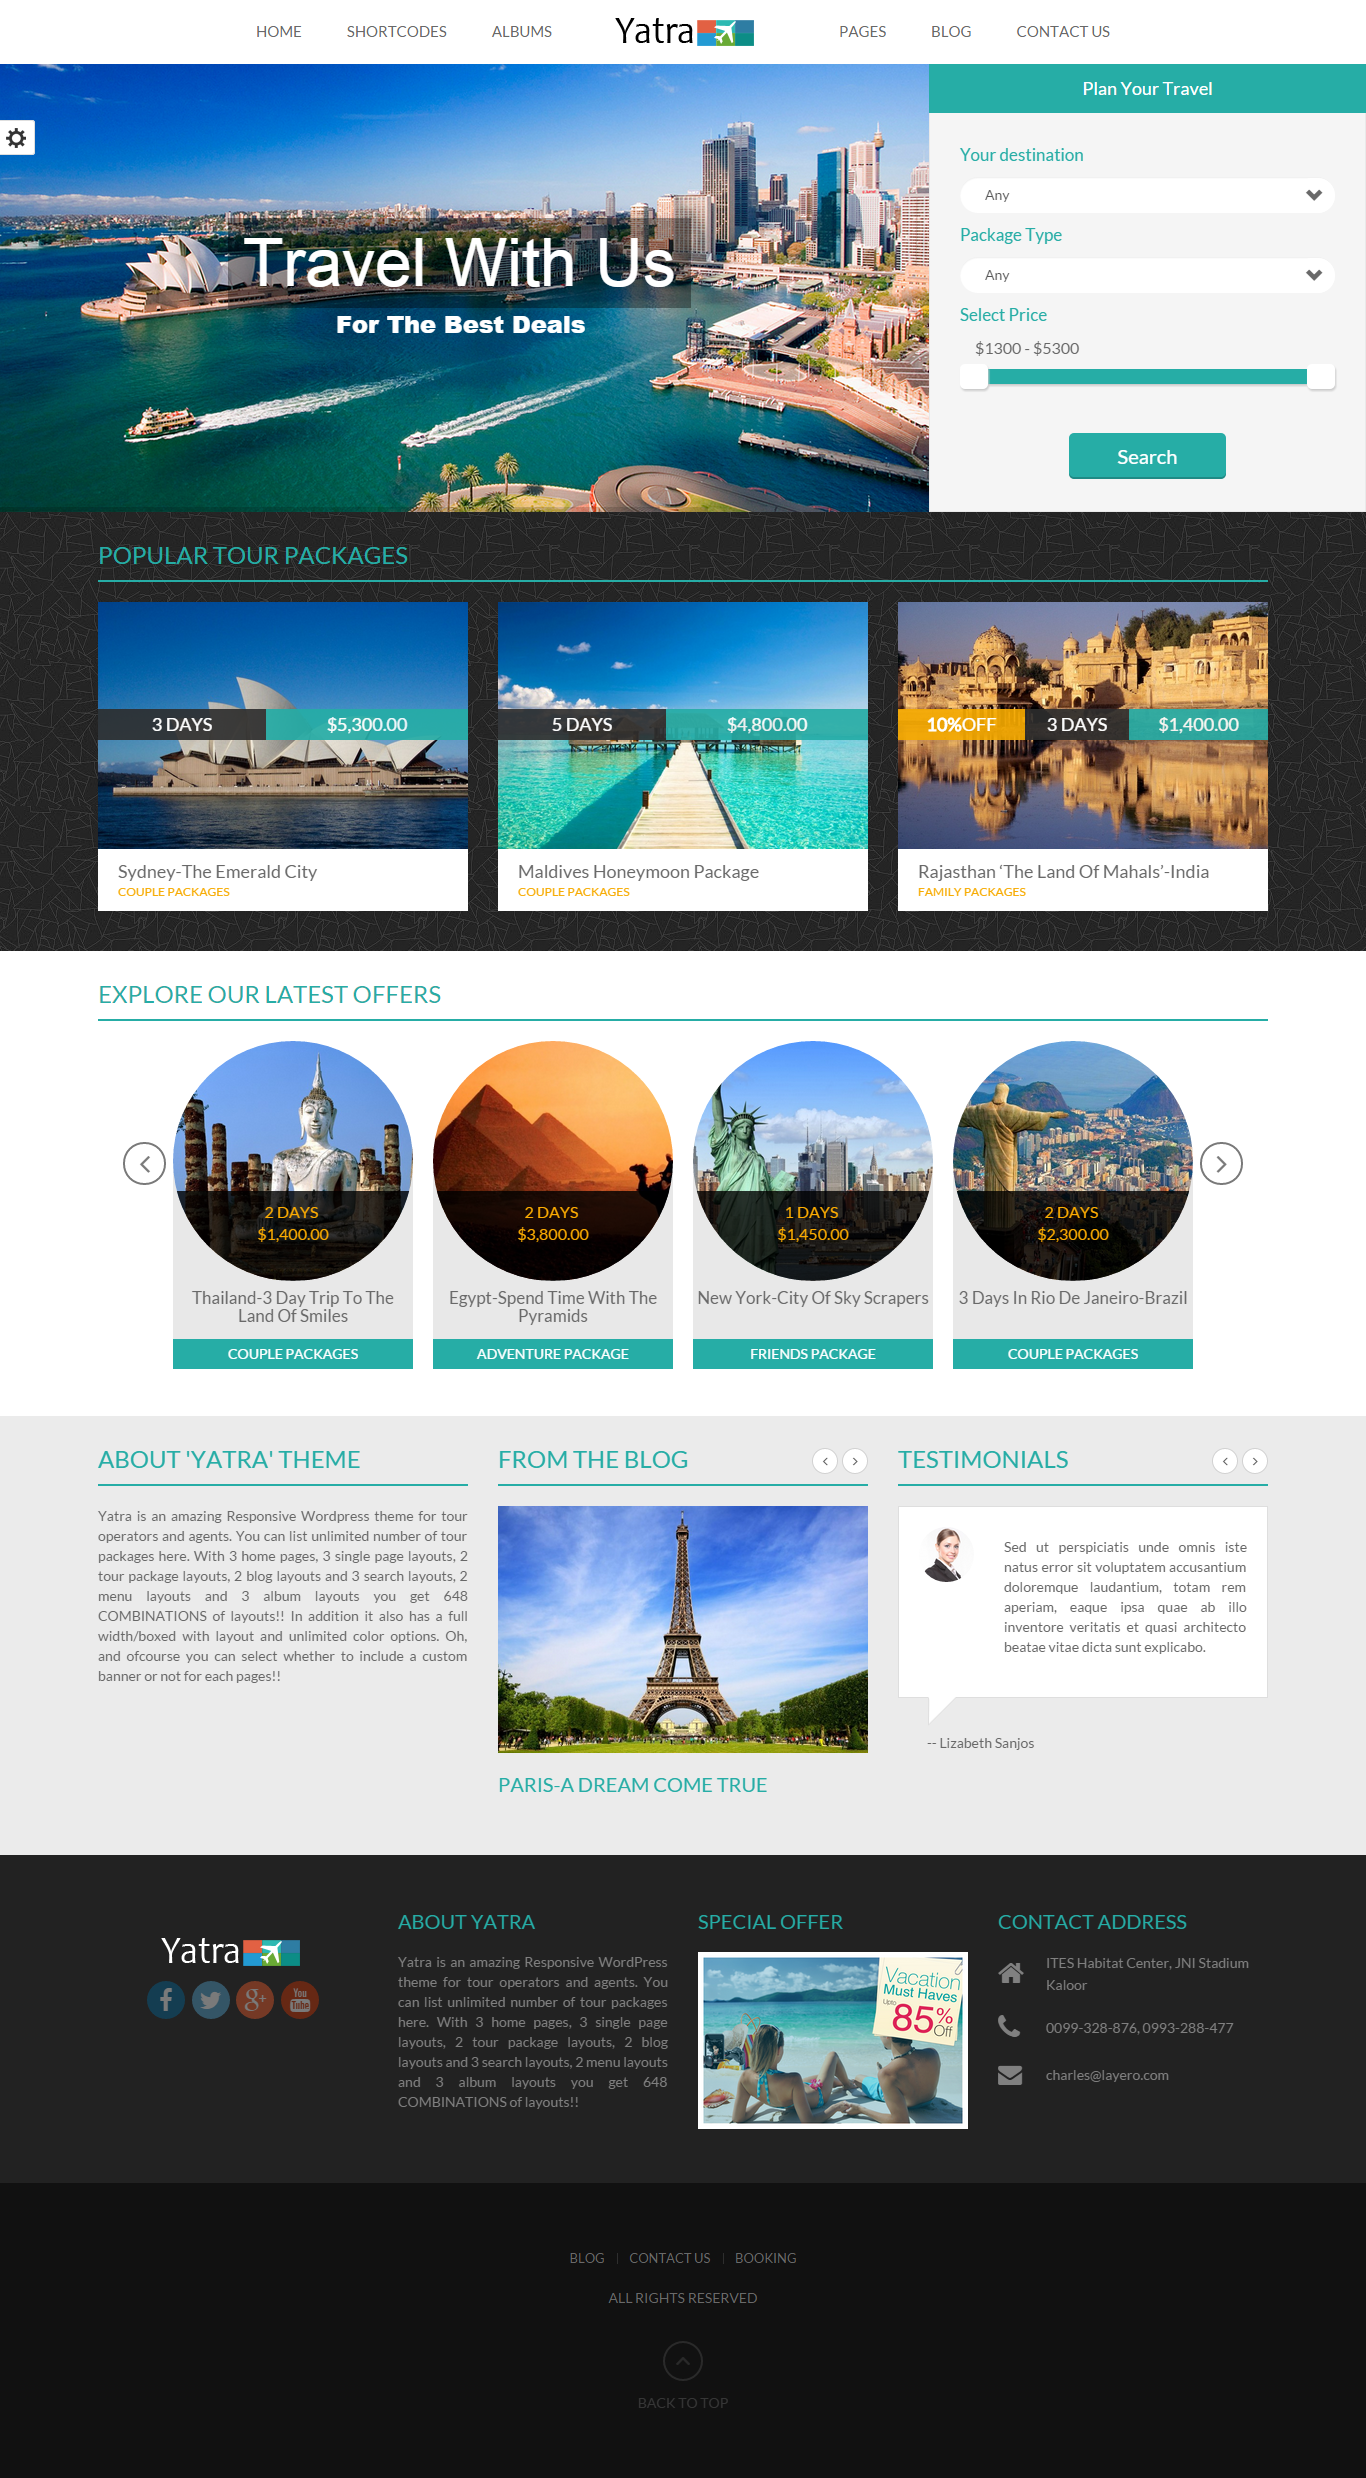 yatra travel wordpress theme home page layout 3 #travel #booking